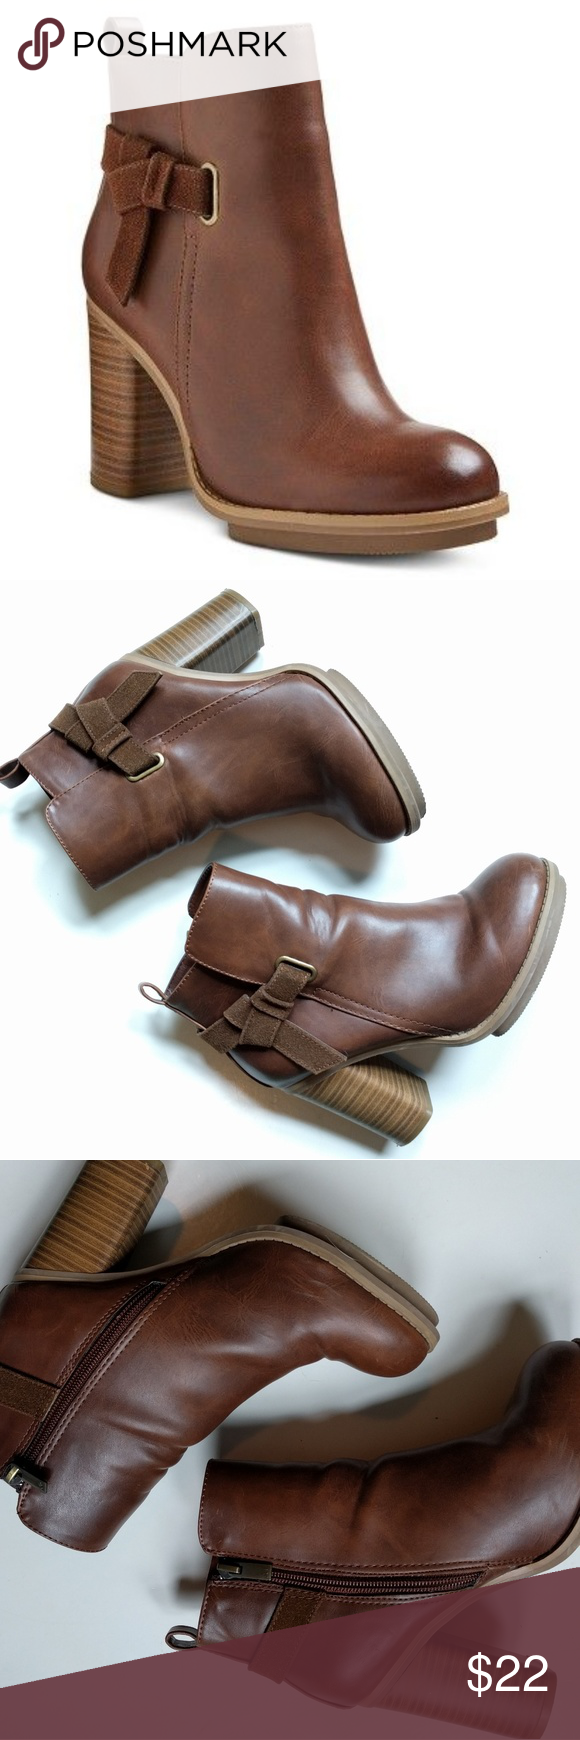 Aldo for Target A+ Melody Ankle Booties Very gently used. First image is from Target's website but is the most accurate color wise. If there are any other images you would like to see please let me know! Sorry, no trades. Aldo Shoes Ankle Boots & Booties